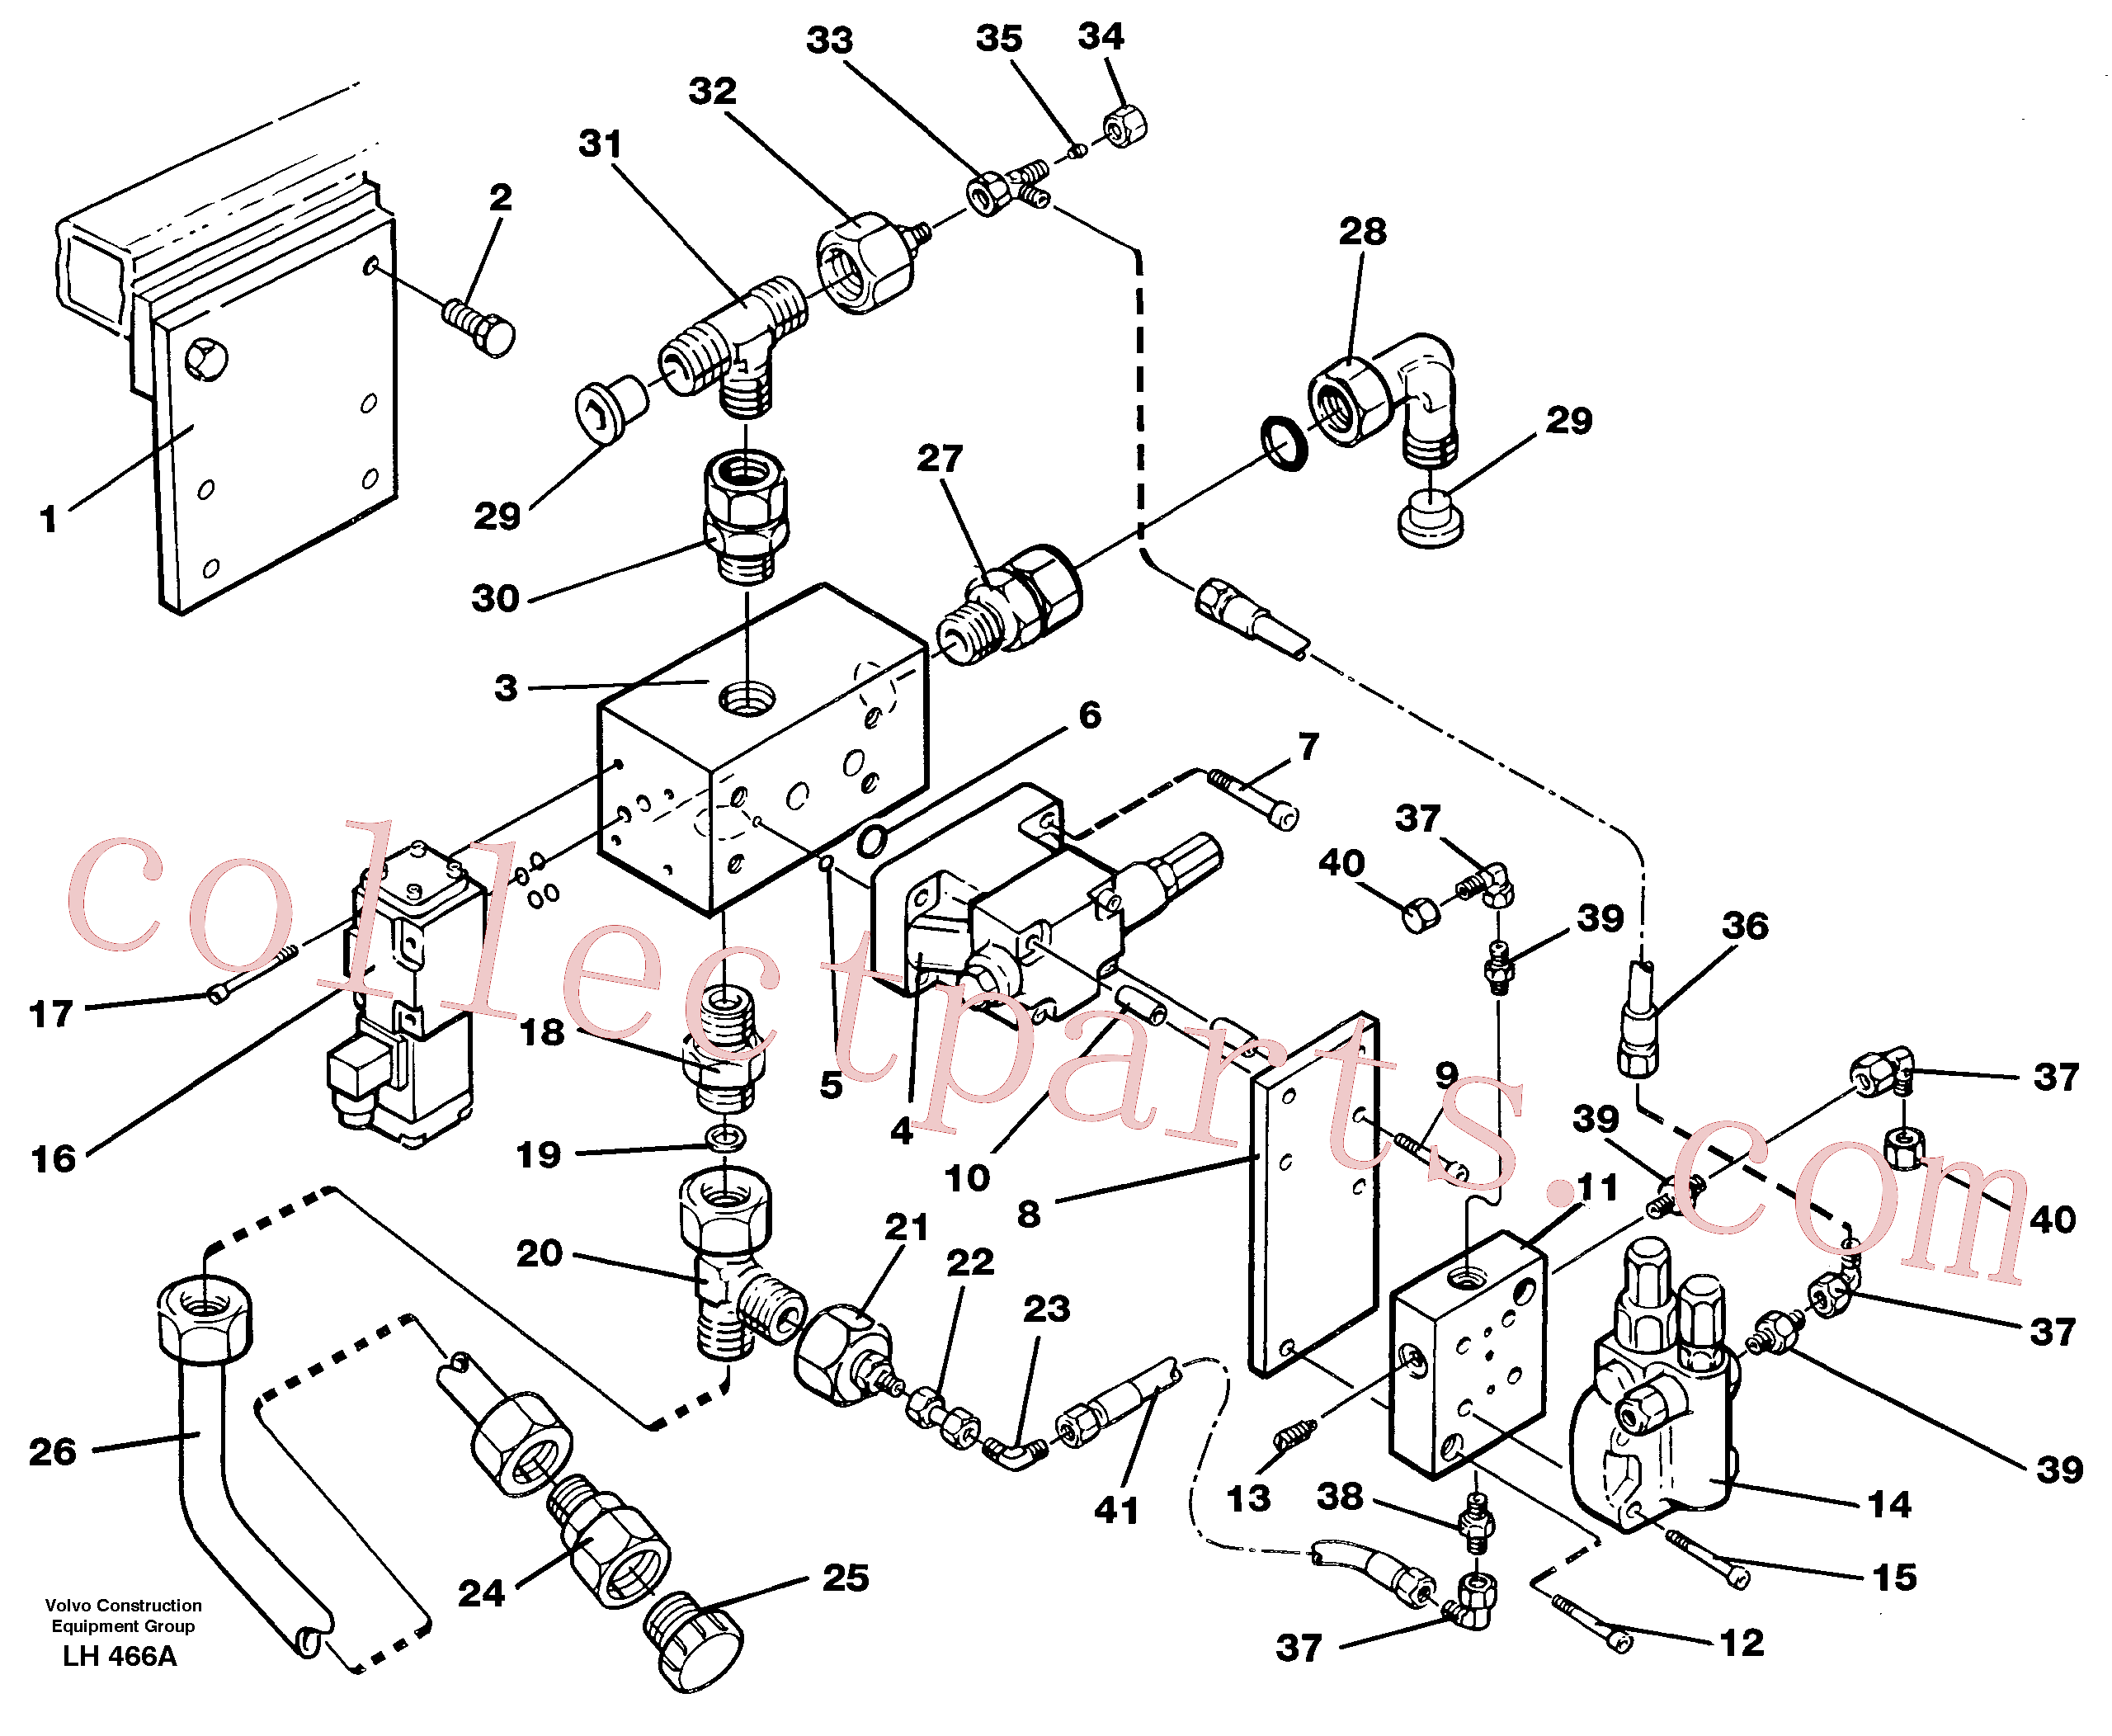 VOE14211065 for Volvo Magnet equipment, Älmhult, valve assembly(LH466A assembly)